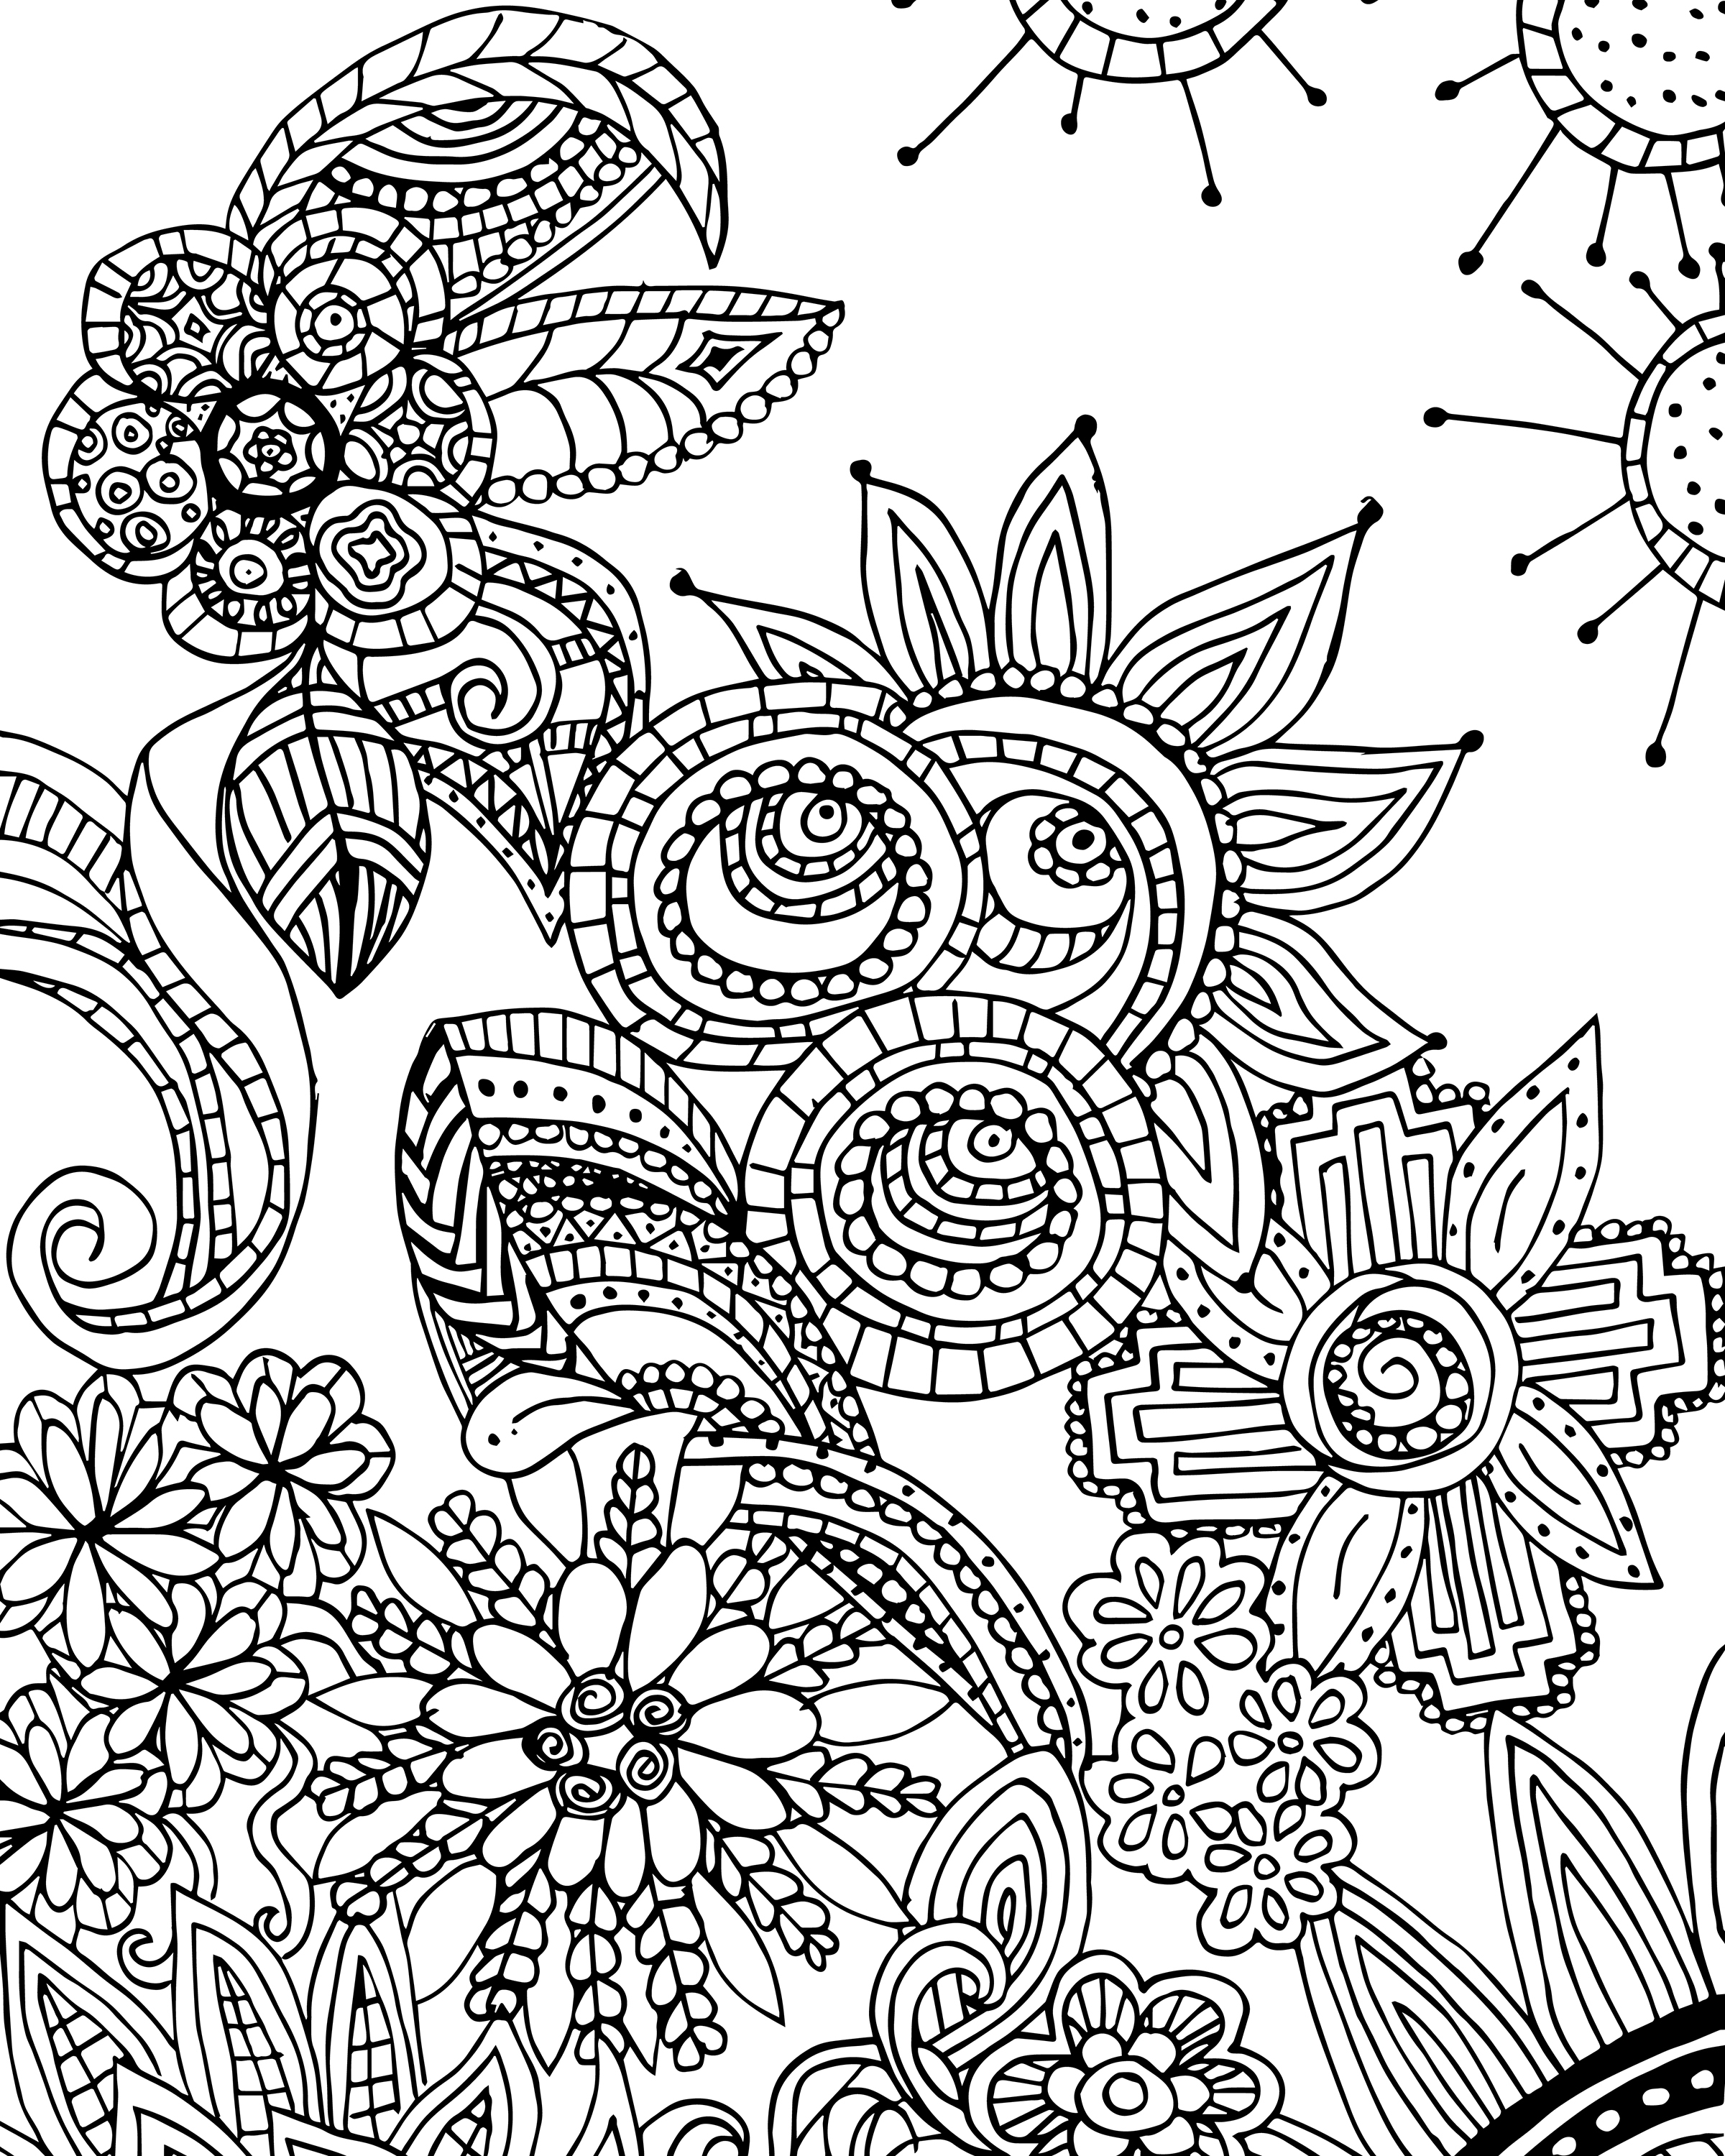 2400x3000 Fresh Free Coloring Page For Adults Flower Zen Doodle Designs